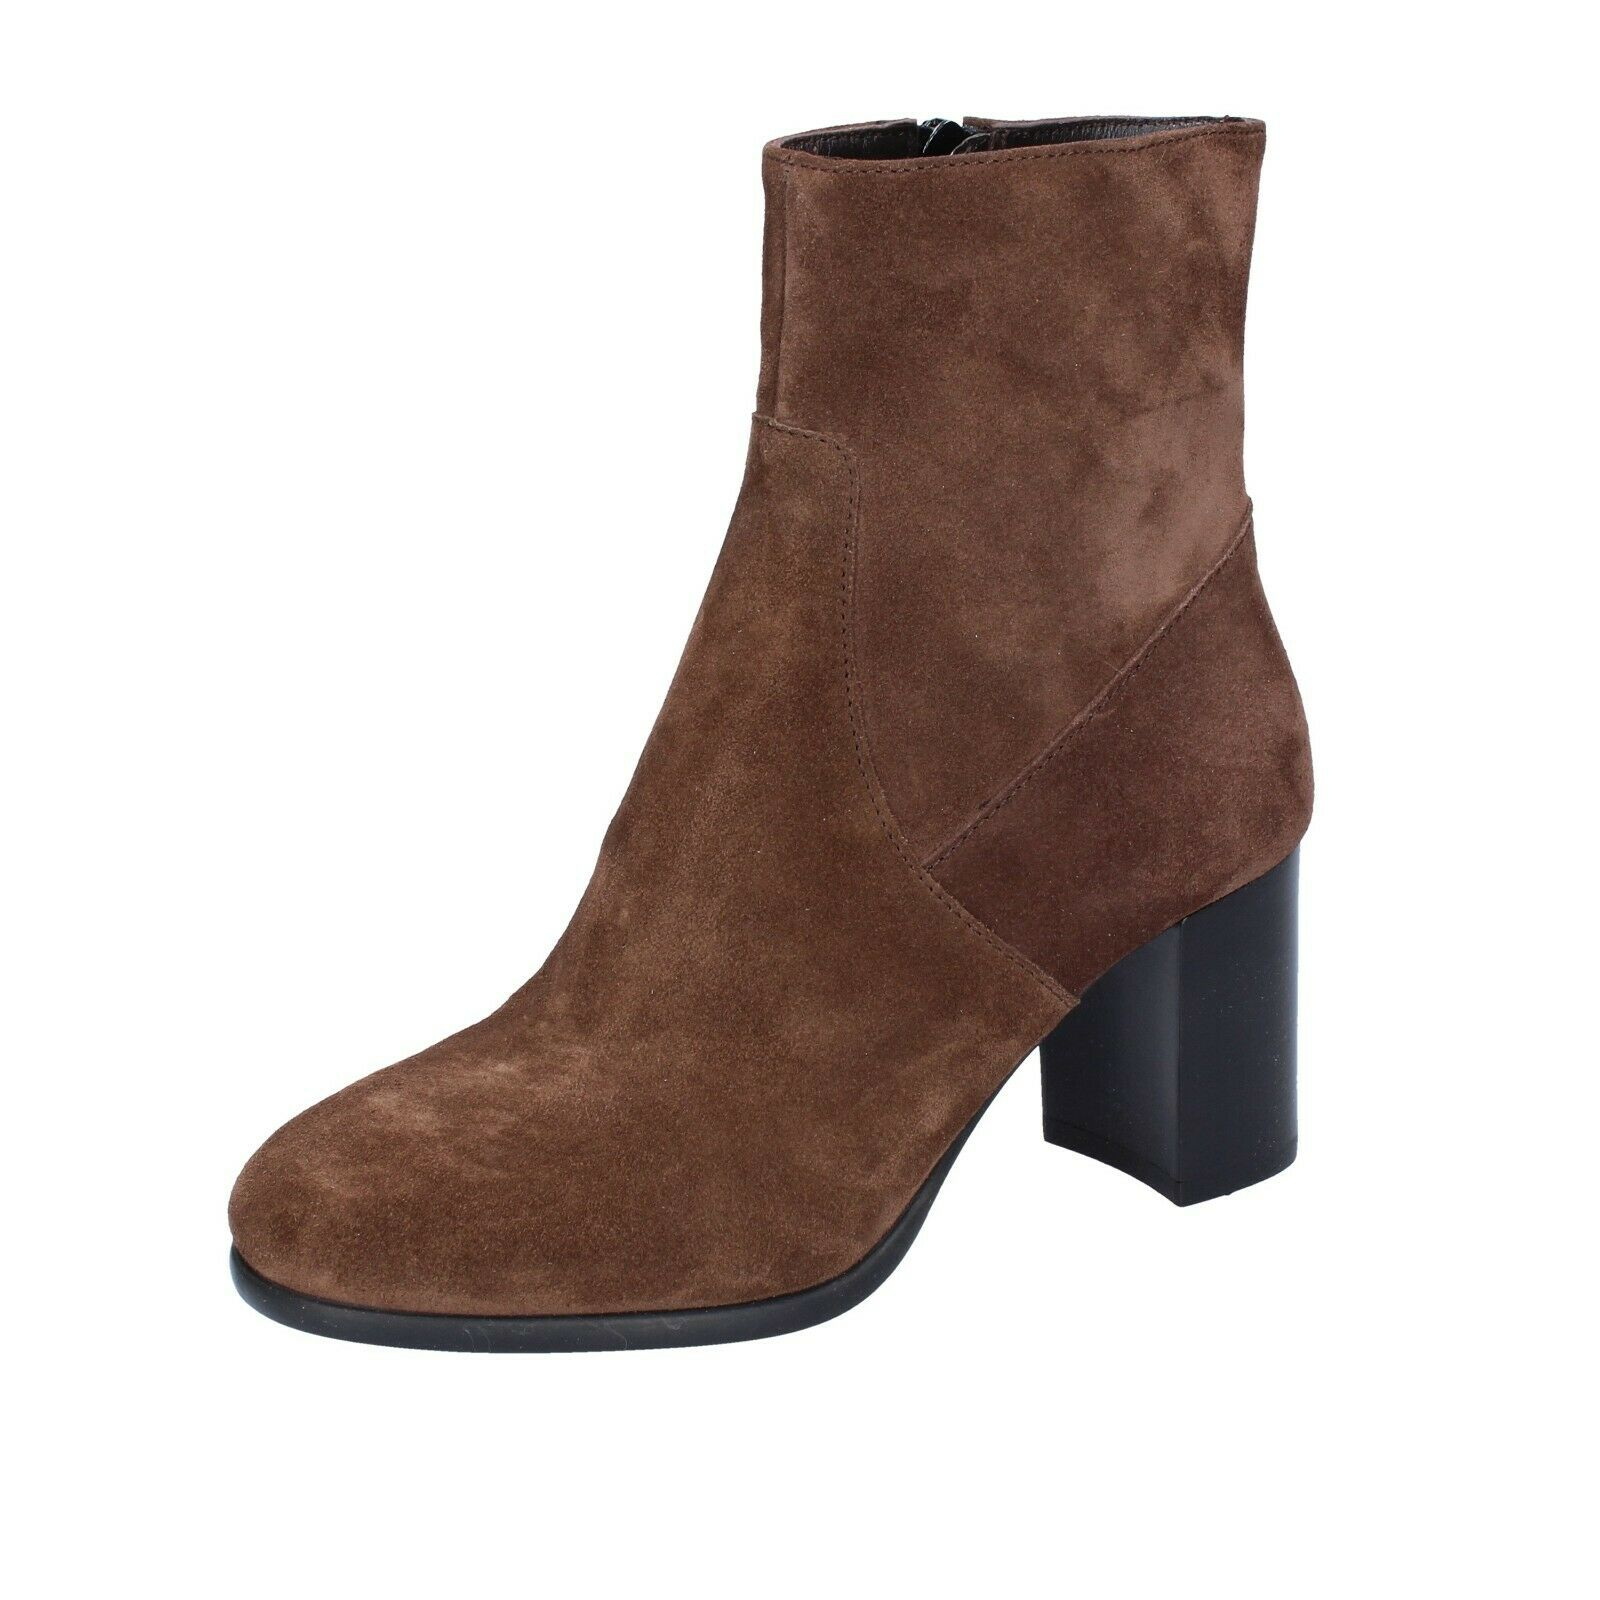 Womens shoes Triver Flight 35 EU Ankle Boots Brown Suede BR76-35